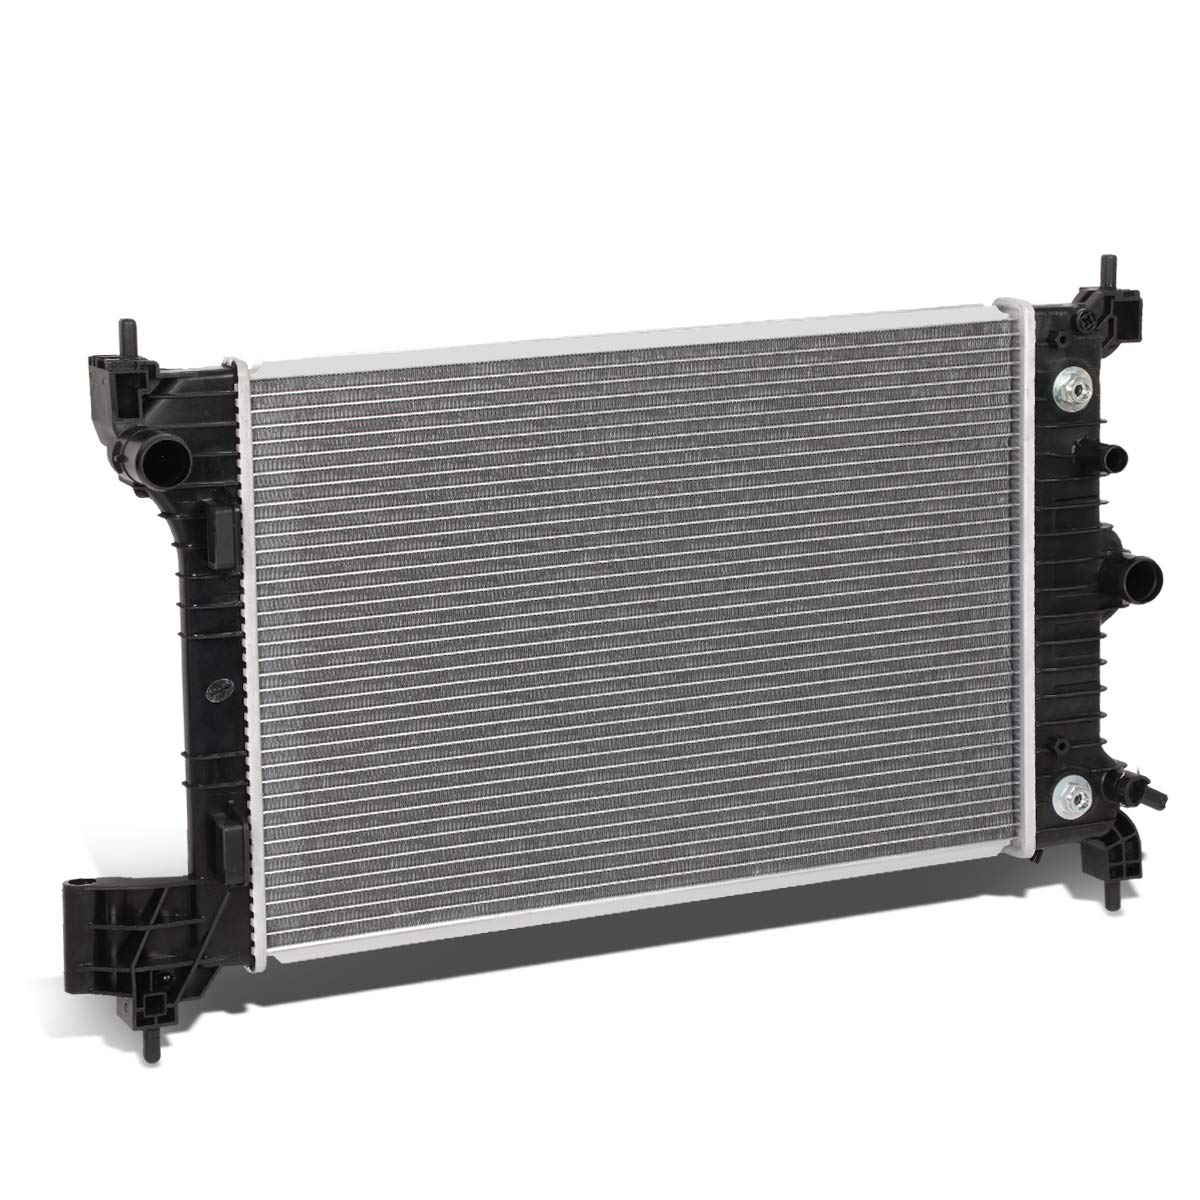 13247 OE Style Aluminum Core Cooling Radiator for Chevy Sonic 1.8L 12-18